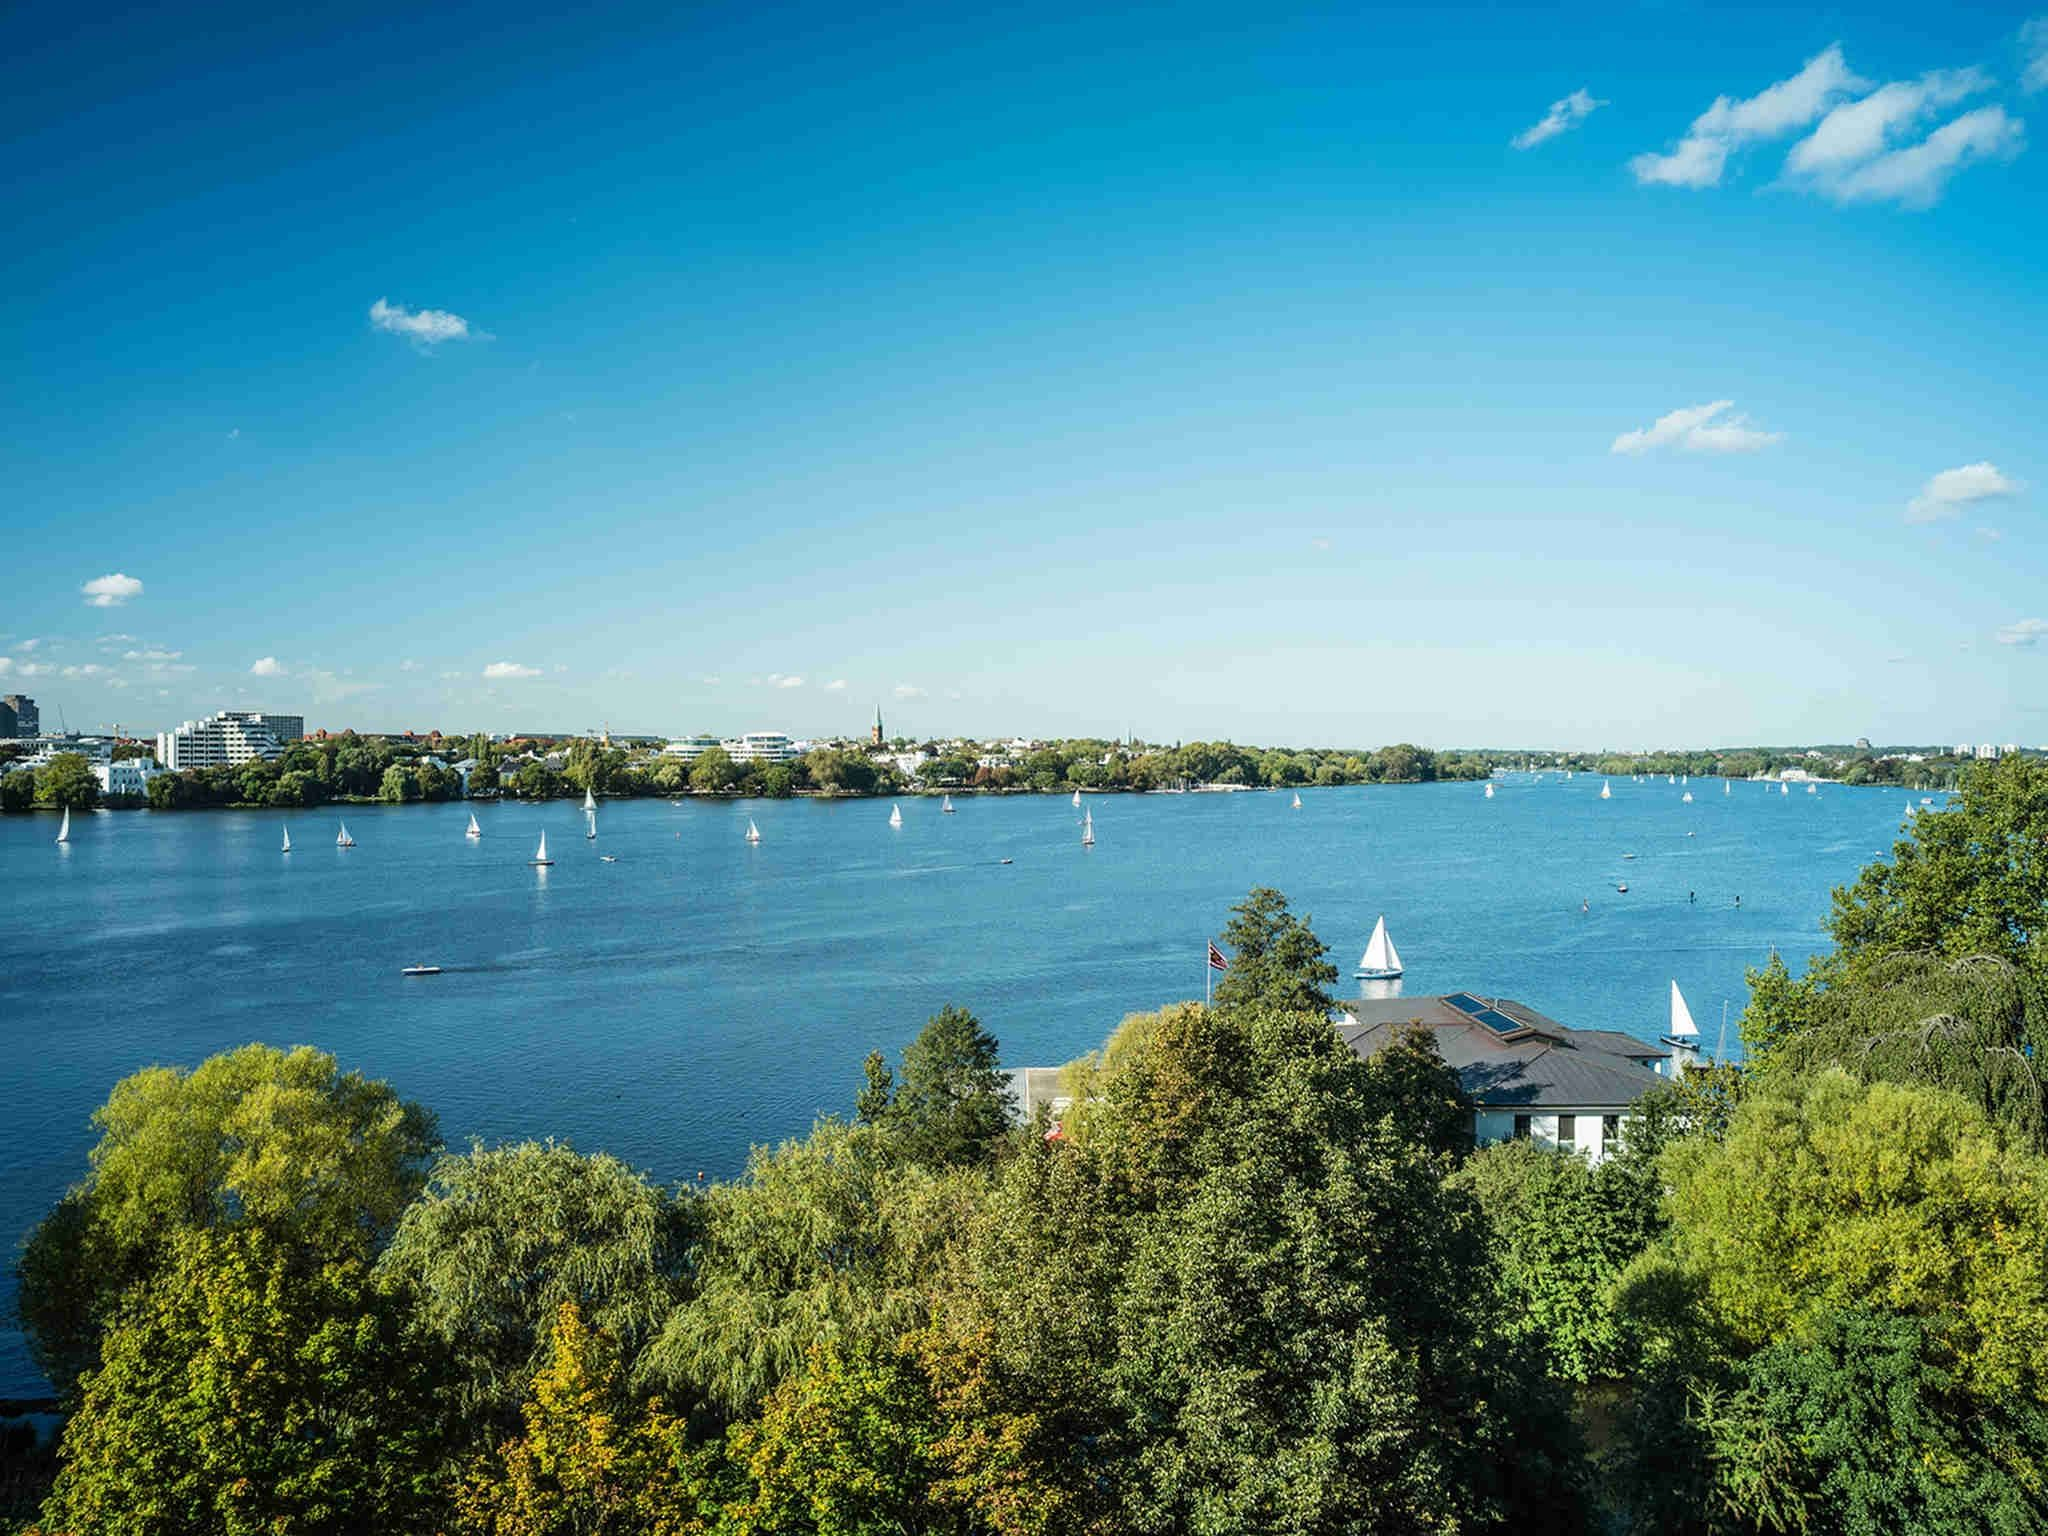 View of the Außenalster with Sailing Boats and Sunshine